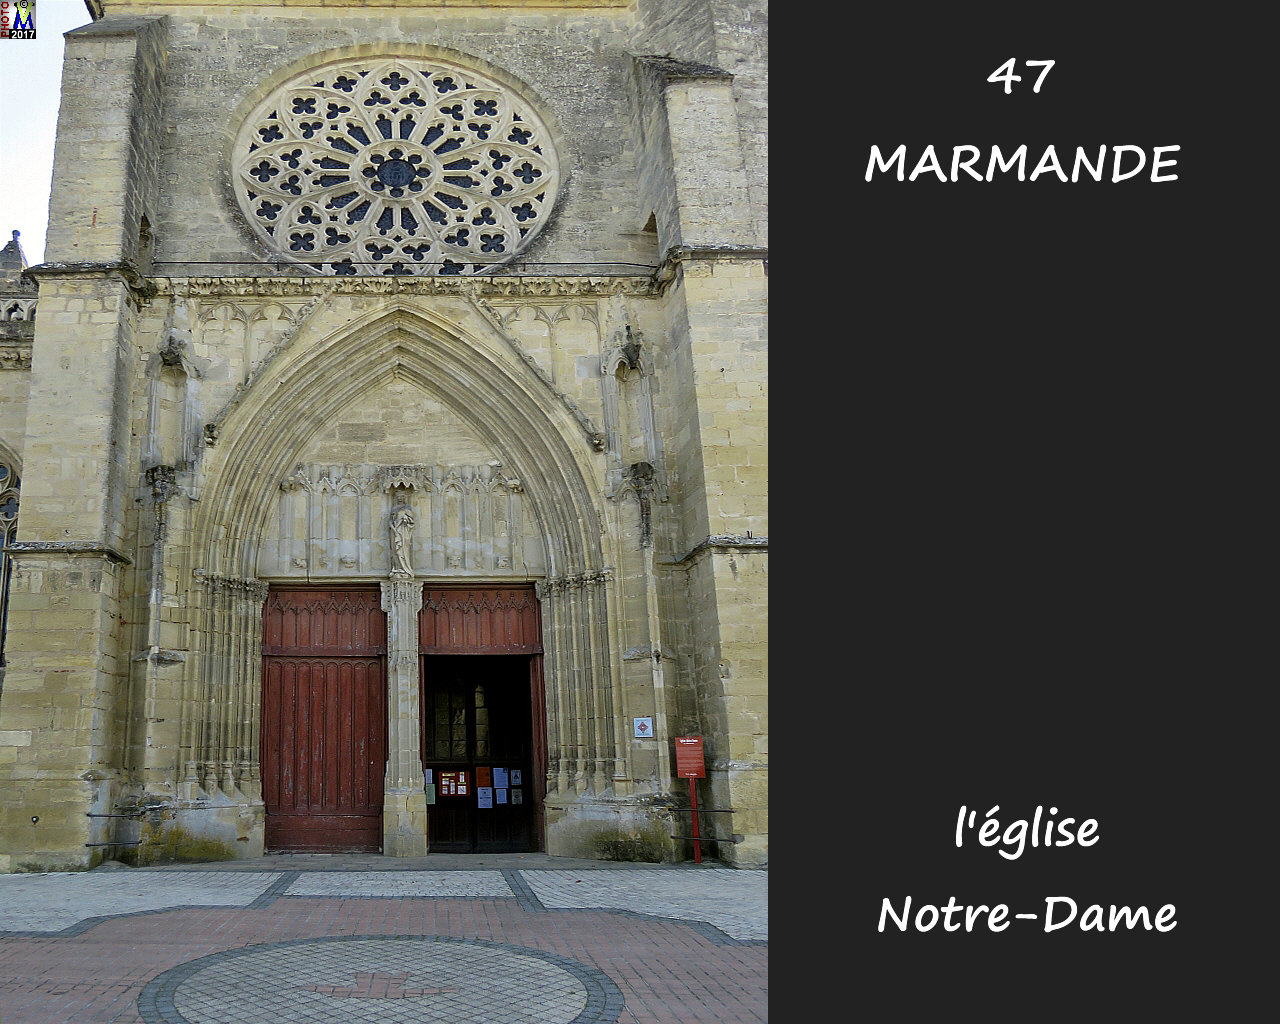 47MARMANDE_eglise_1010.JPG